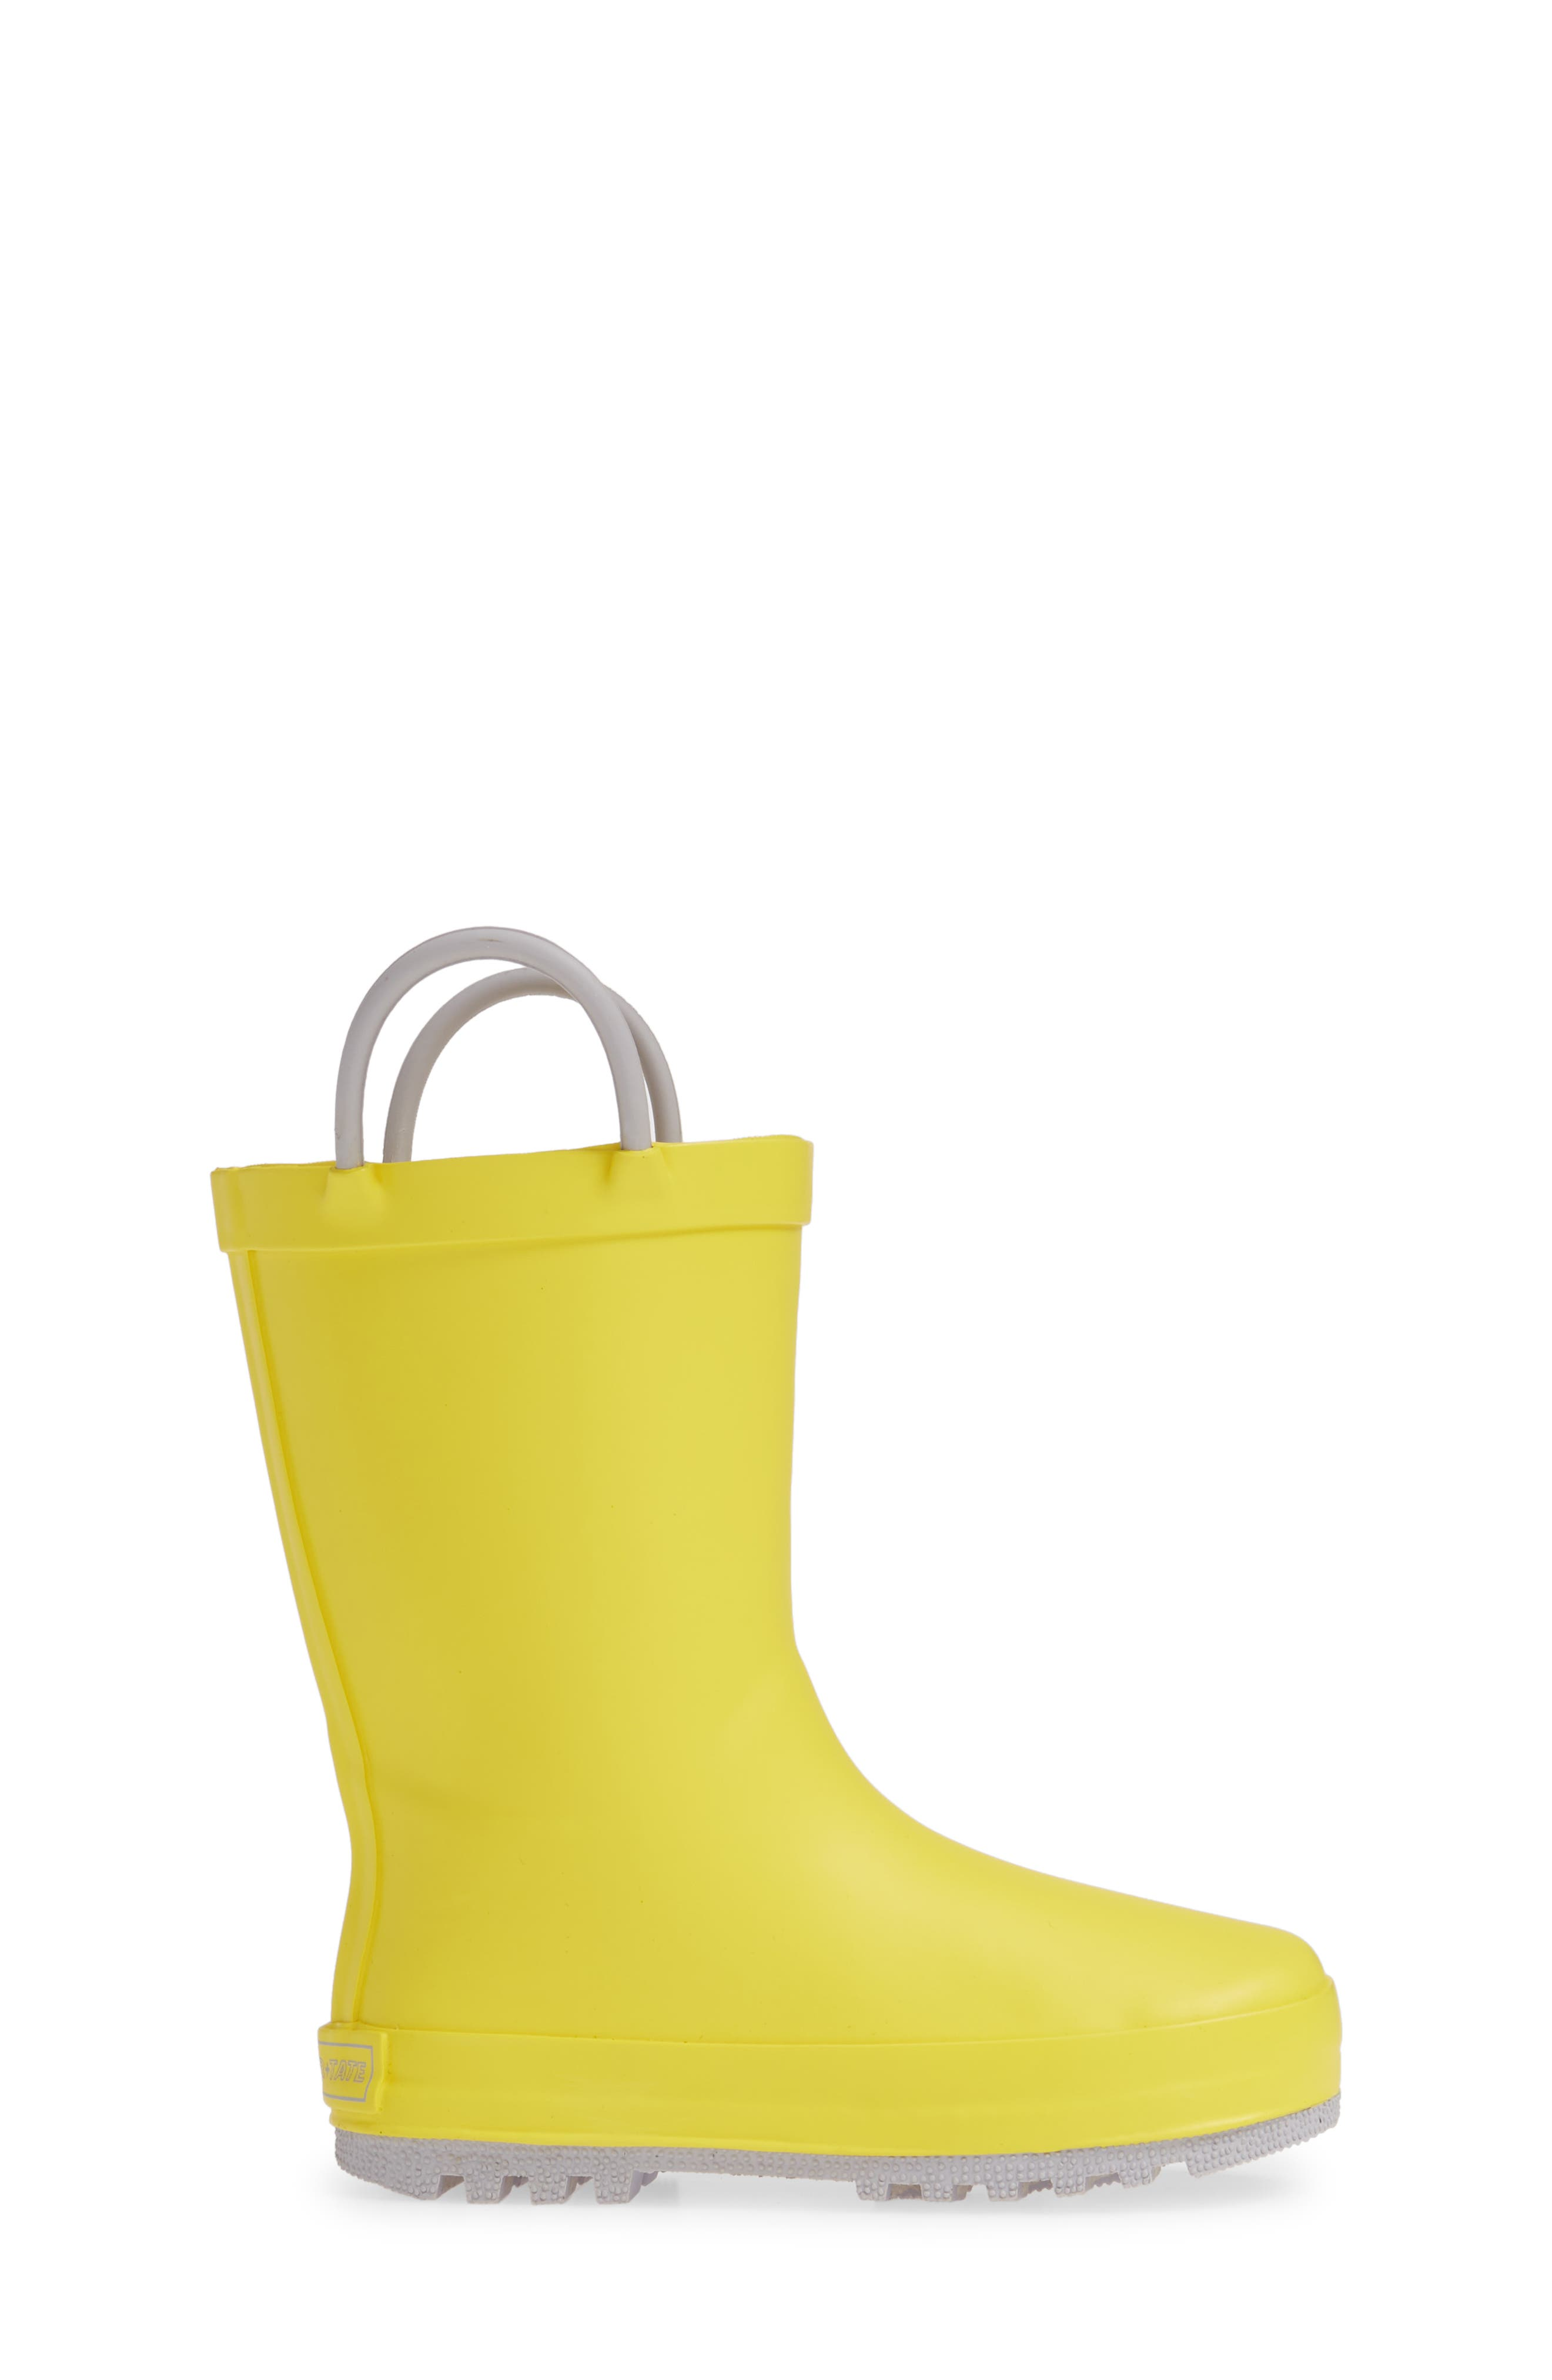 TUCKER + TATE, Puddle Rain Boot, Alternate thumbnail 3, color, YELLOW/ GREY RUBBER